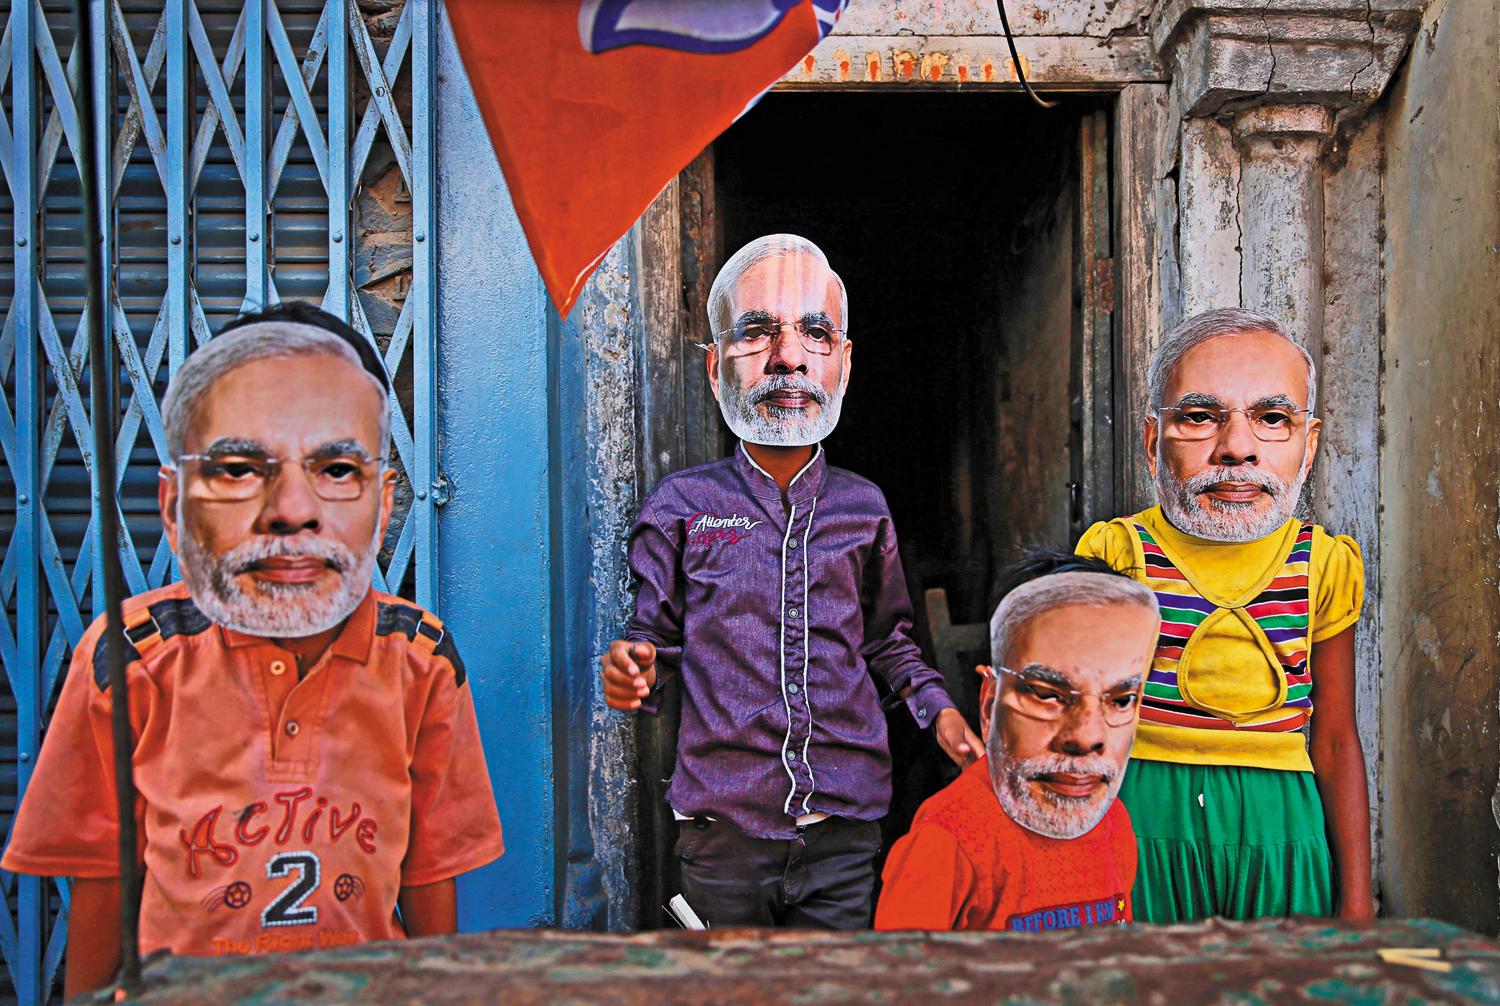 Children-in-Varanasi-India-wearing-masks-of-Narendra-Modi-April-24-2014